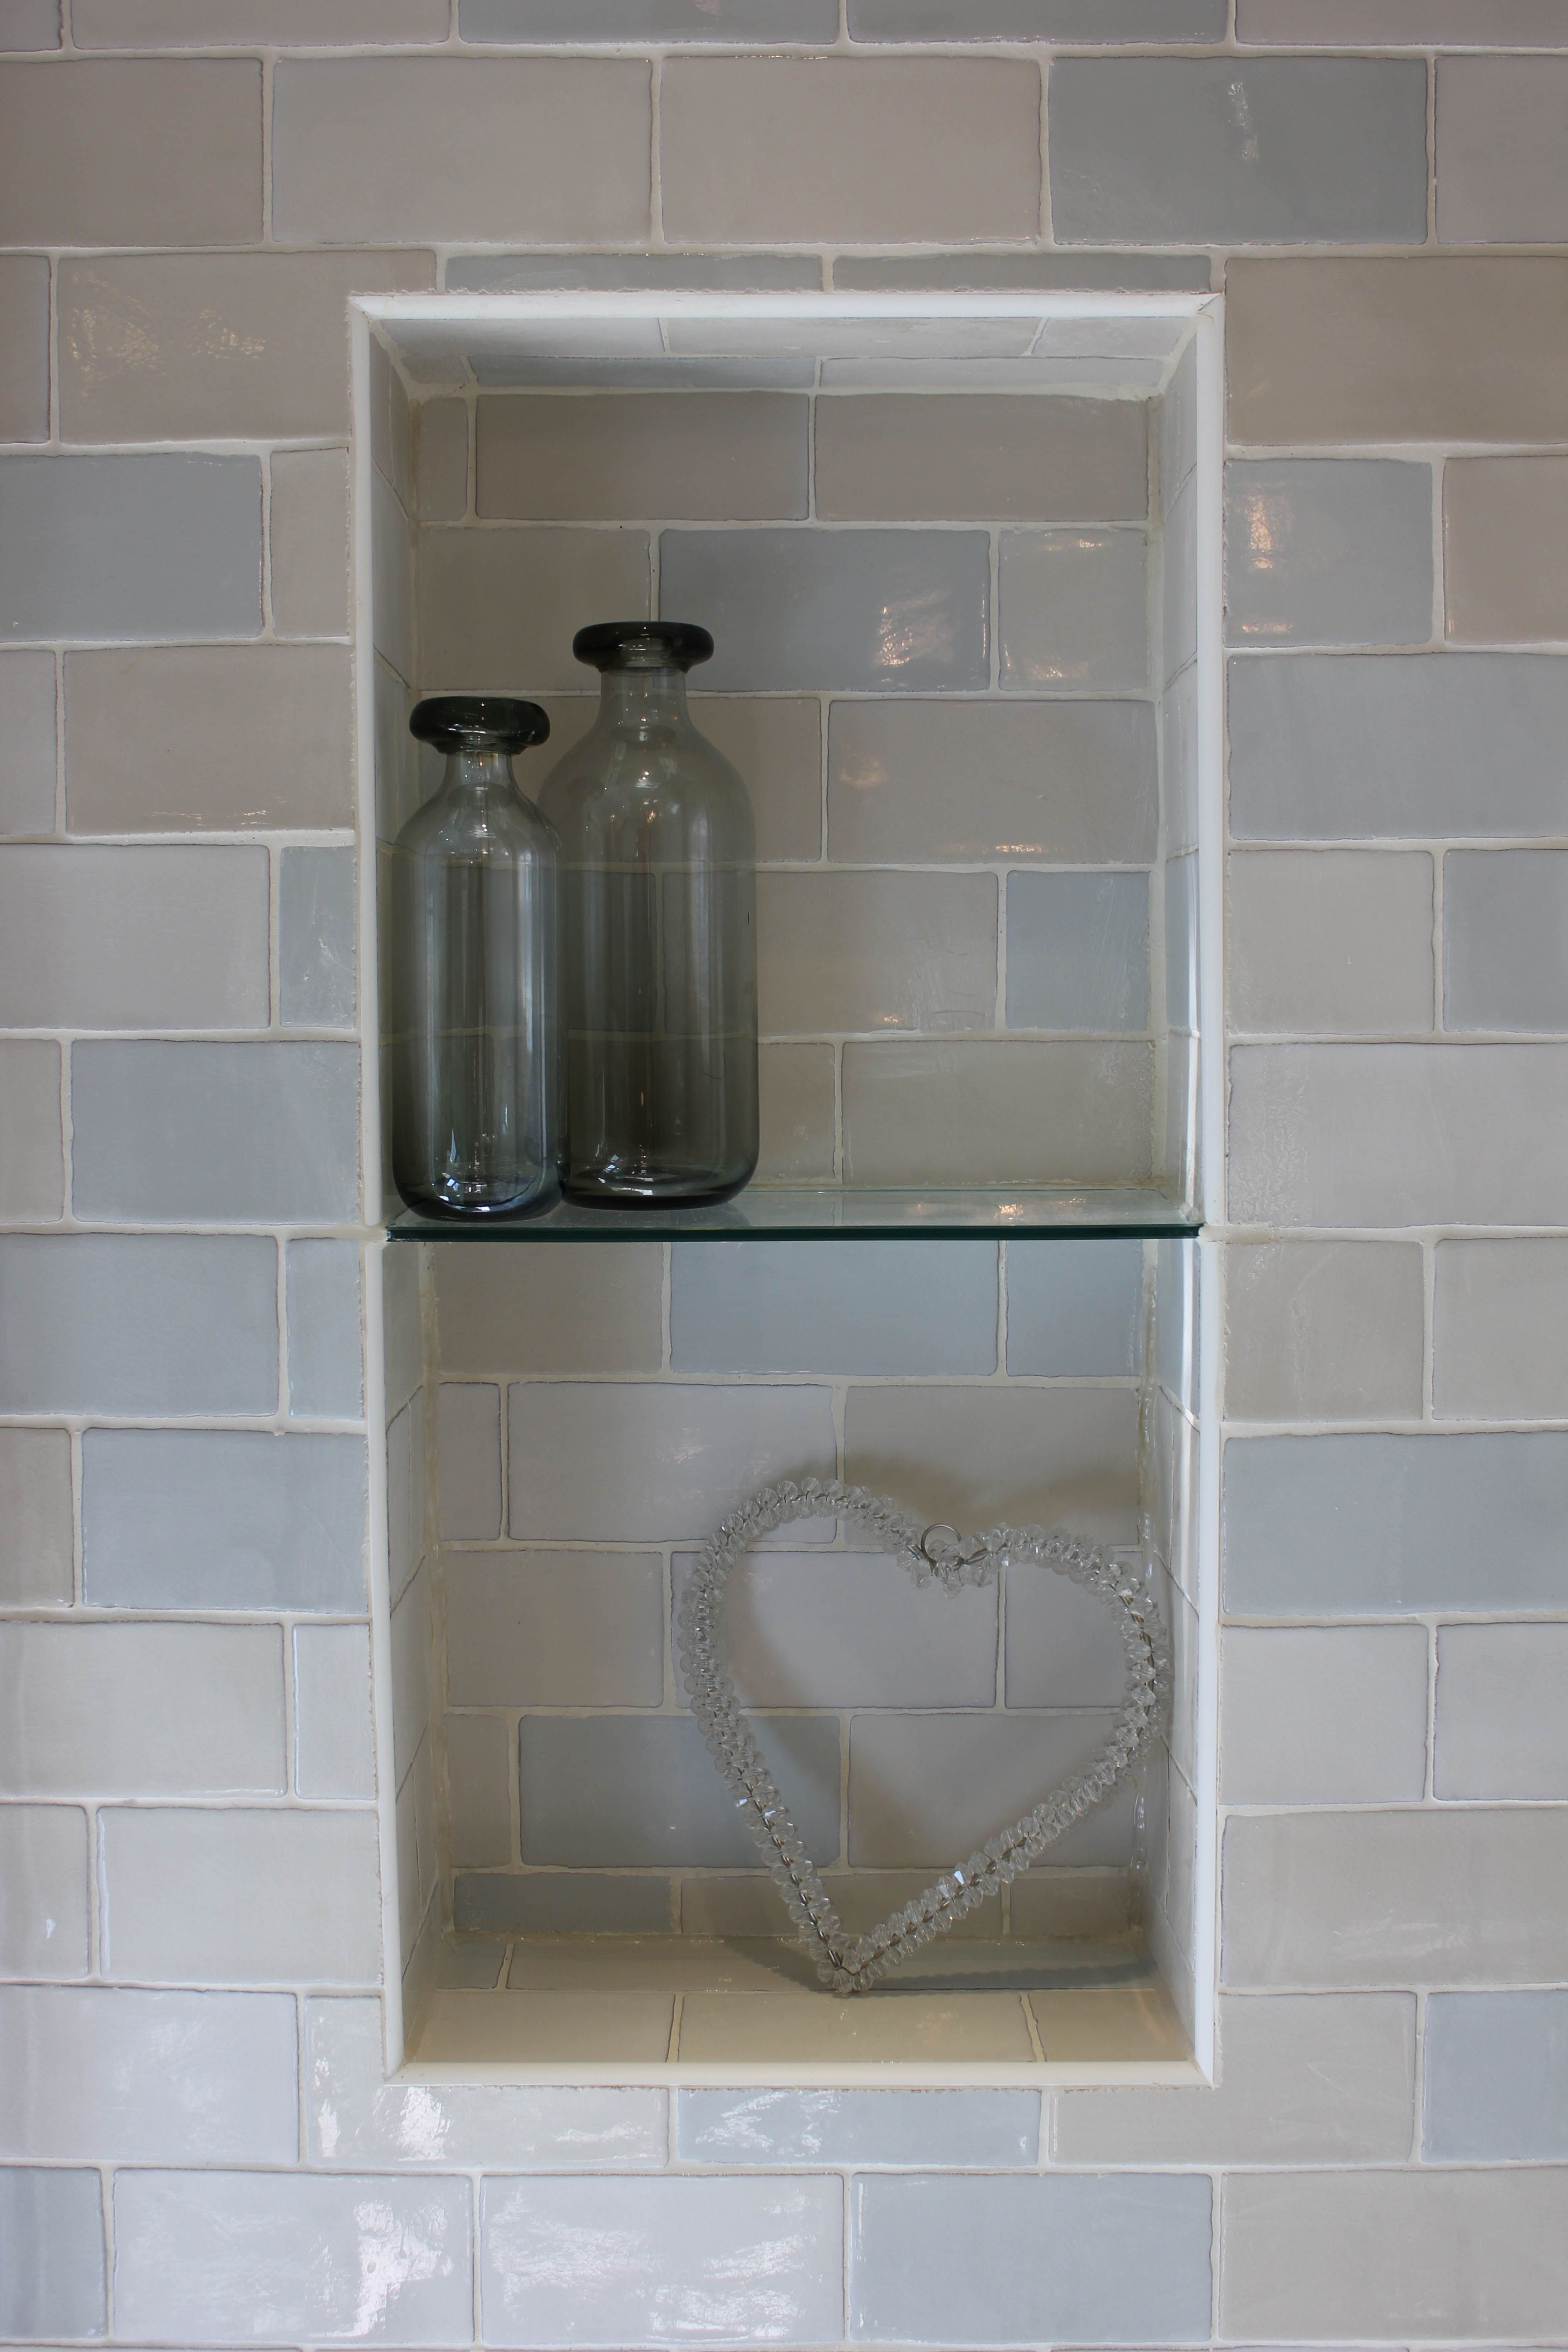 Craquel Tiled Shower Cubby Hole By Cotton Tree Interiors T 44